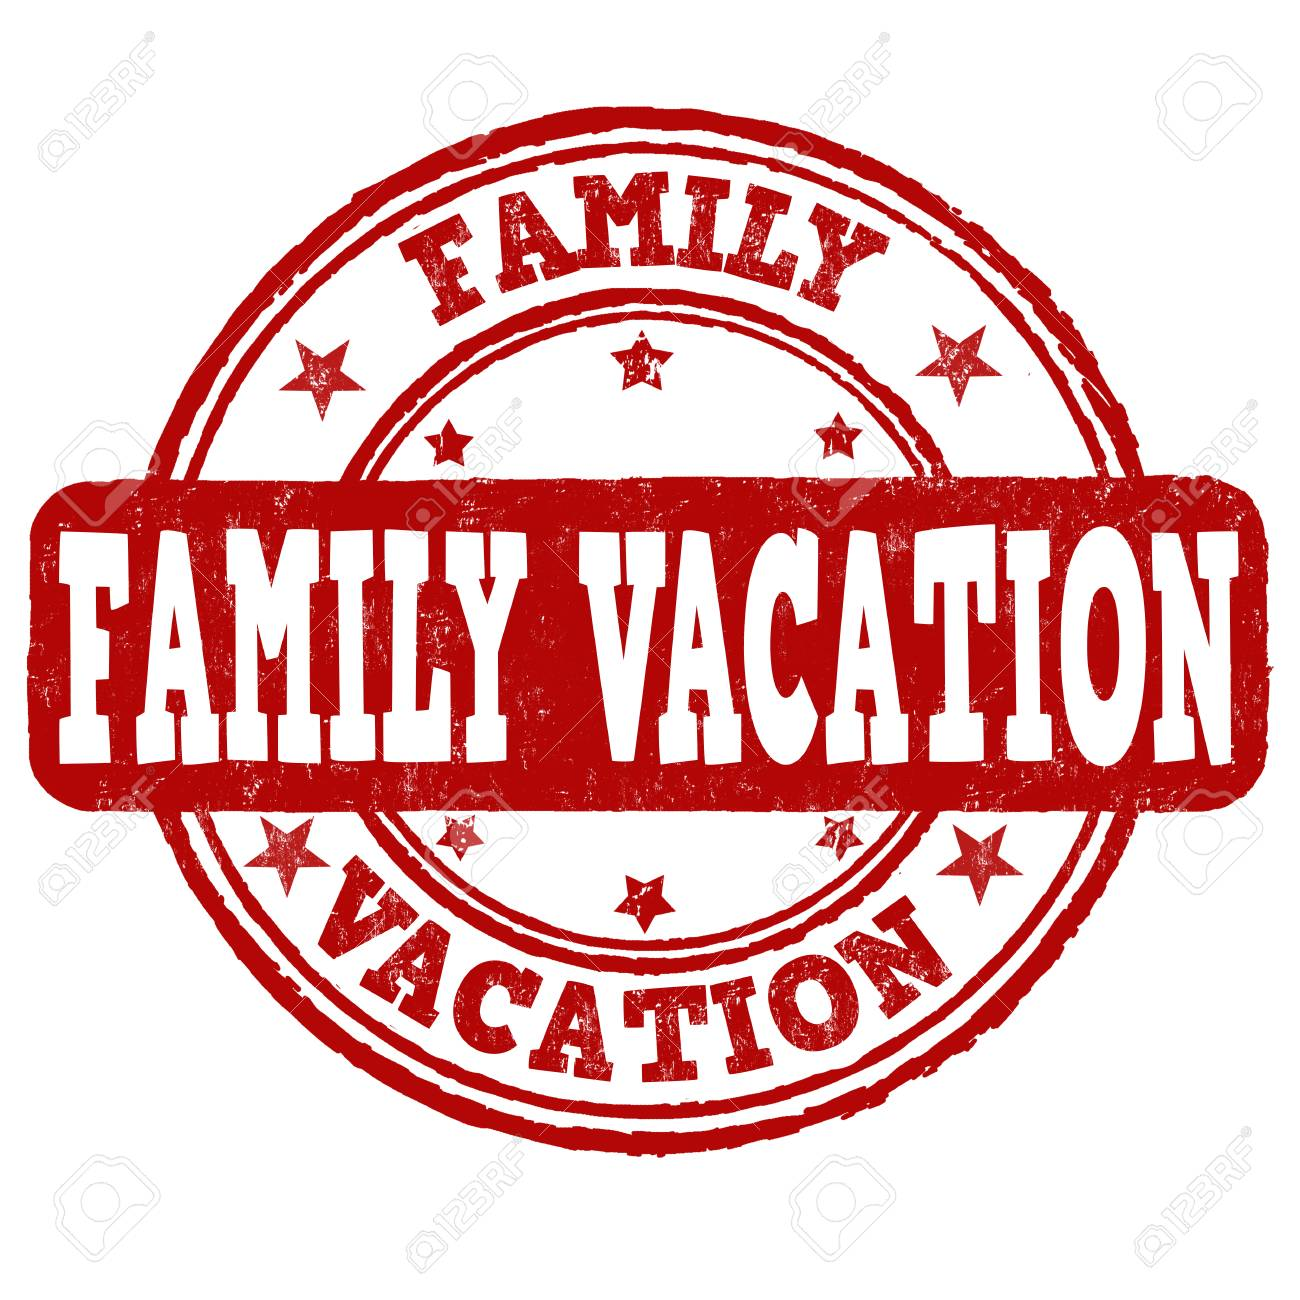 family vacation grunge rubber stamp on white background vector